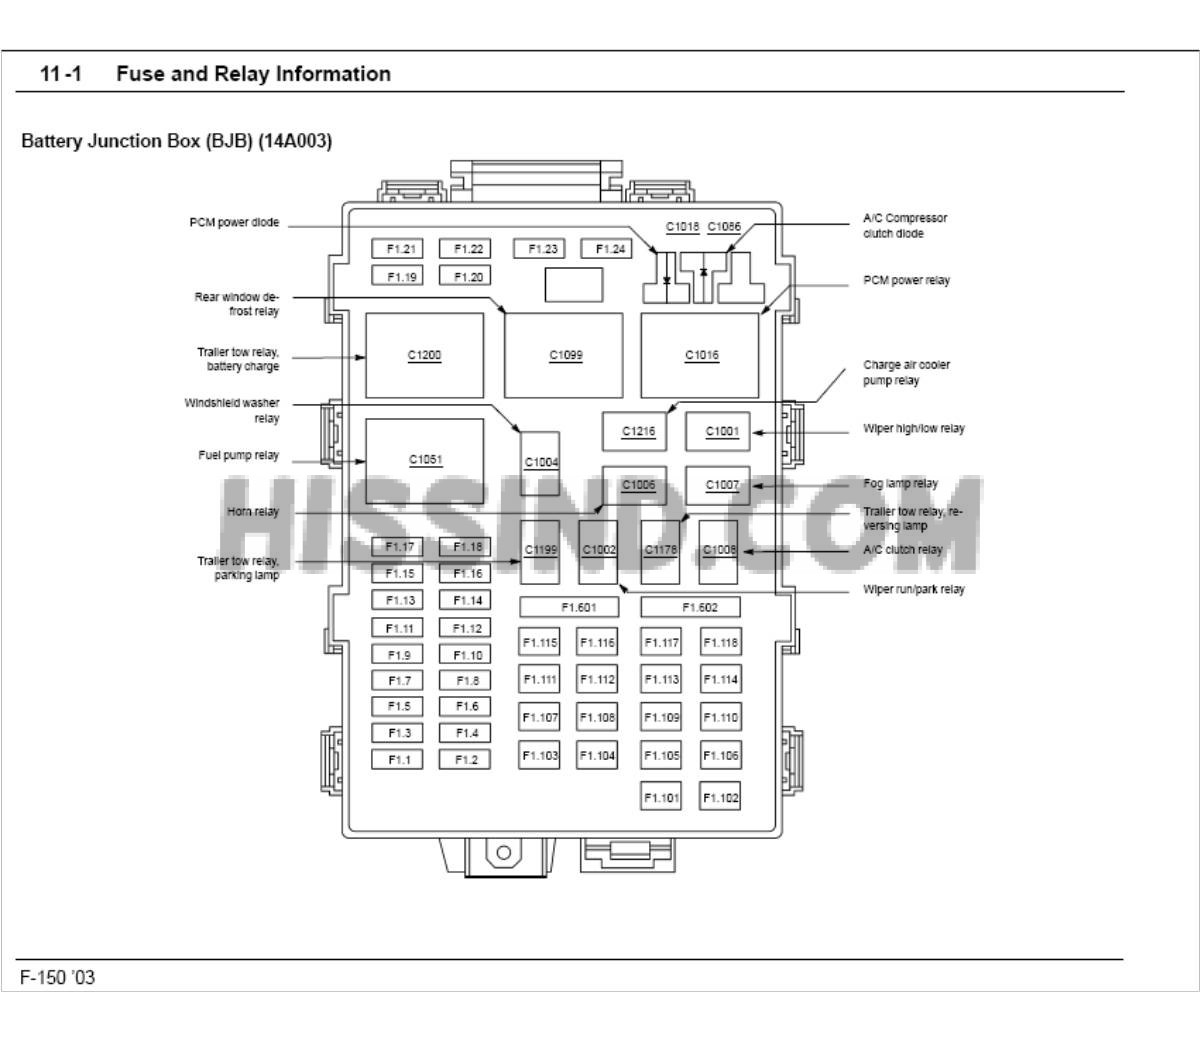 2000 ford f150 fuse box diagram engine bay rh diagrams hissind com 2000 f150 4.2 fuse box diagram 2000 f150 4.2 fuse box diagram